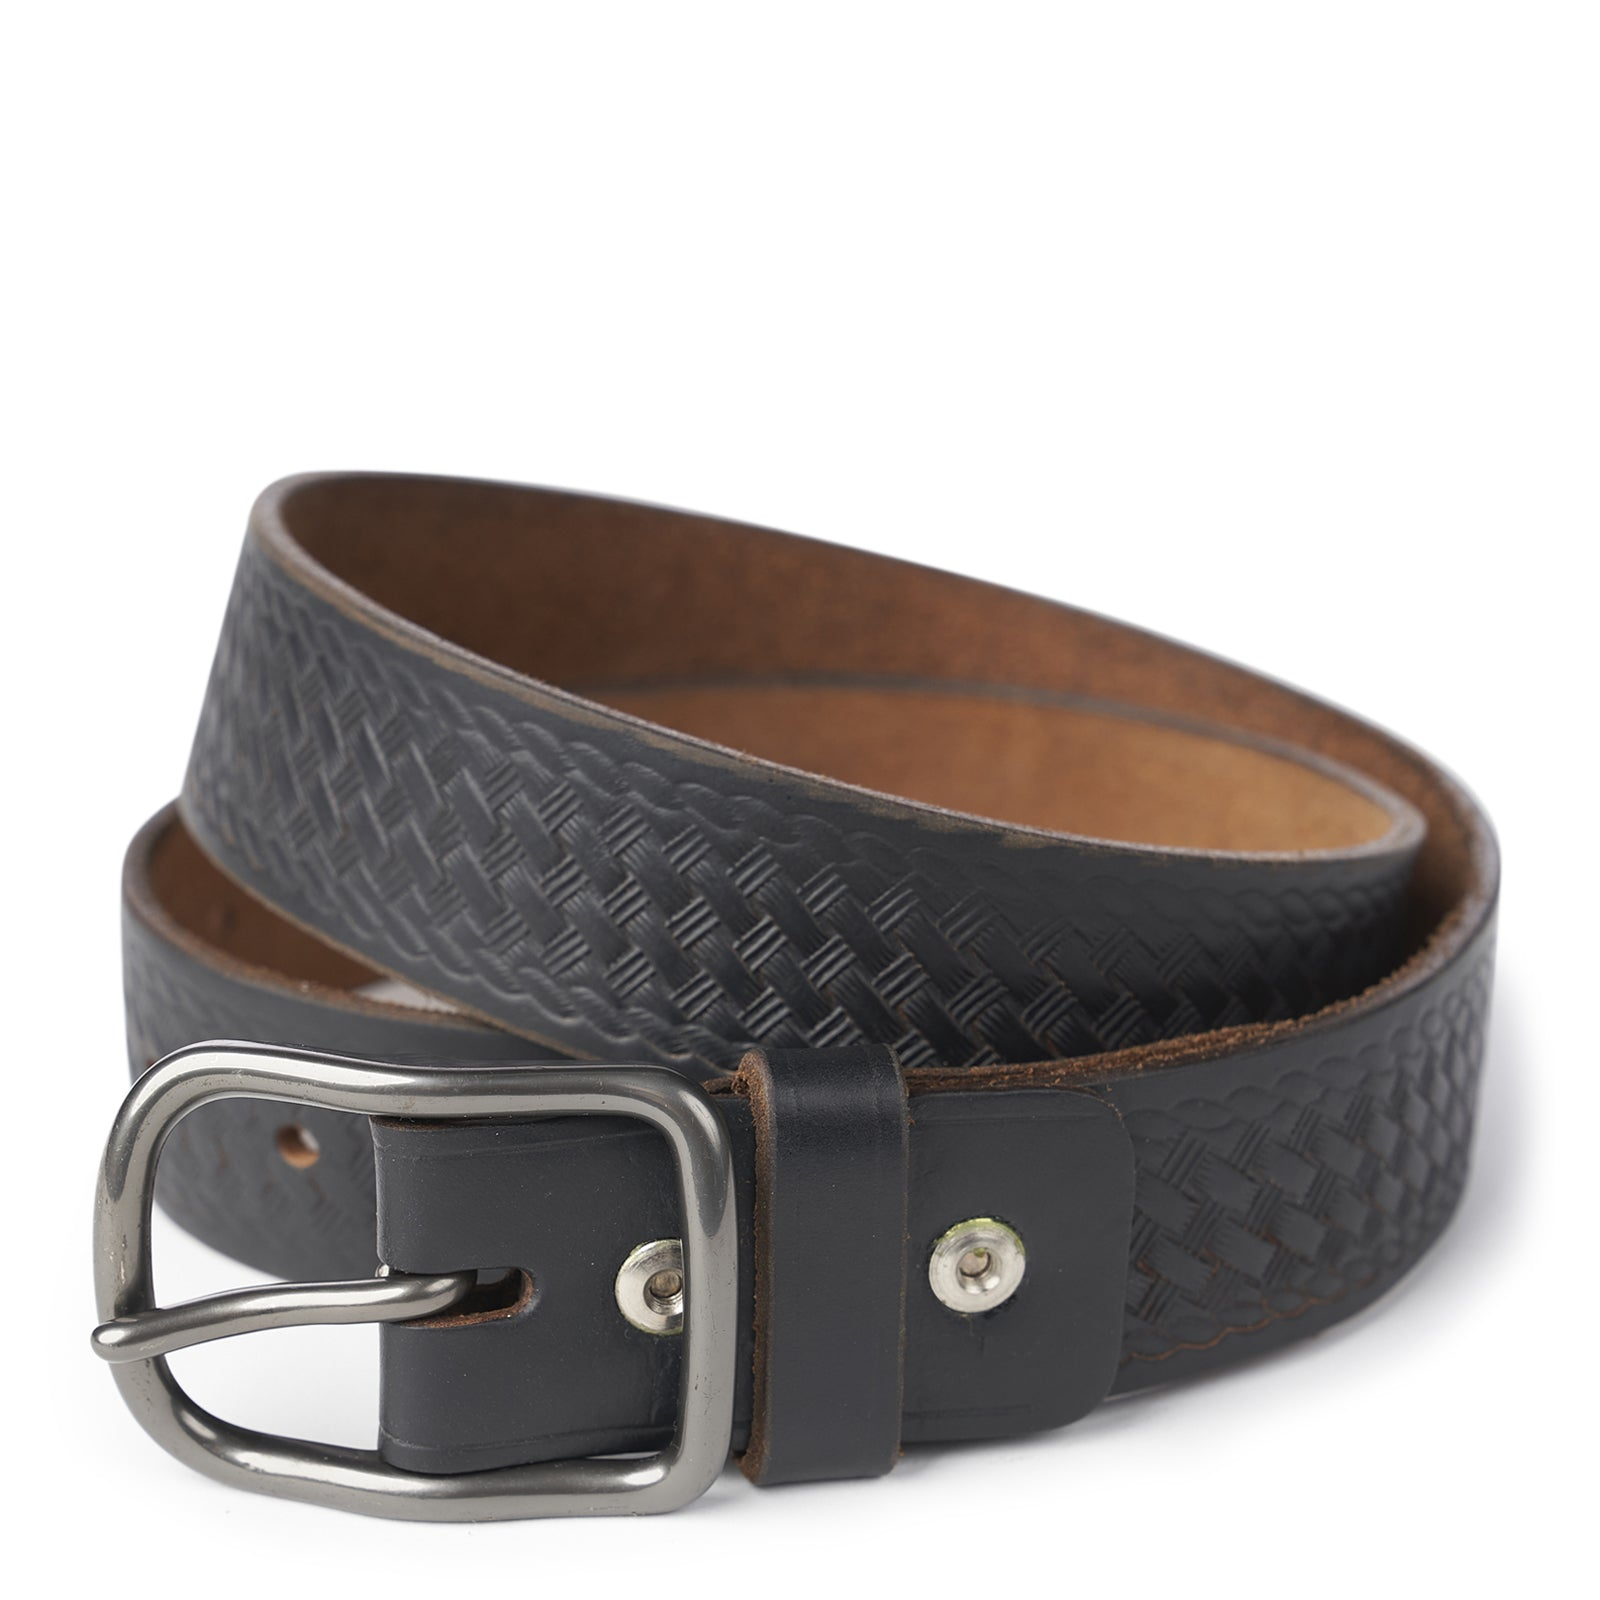 Horween Vintage Belt No. 89 | PRE-SALE CLOSED